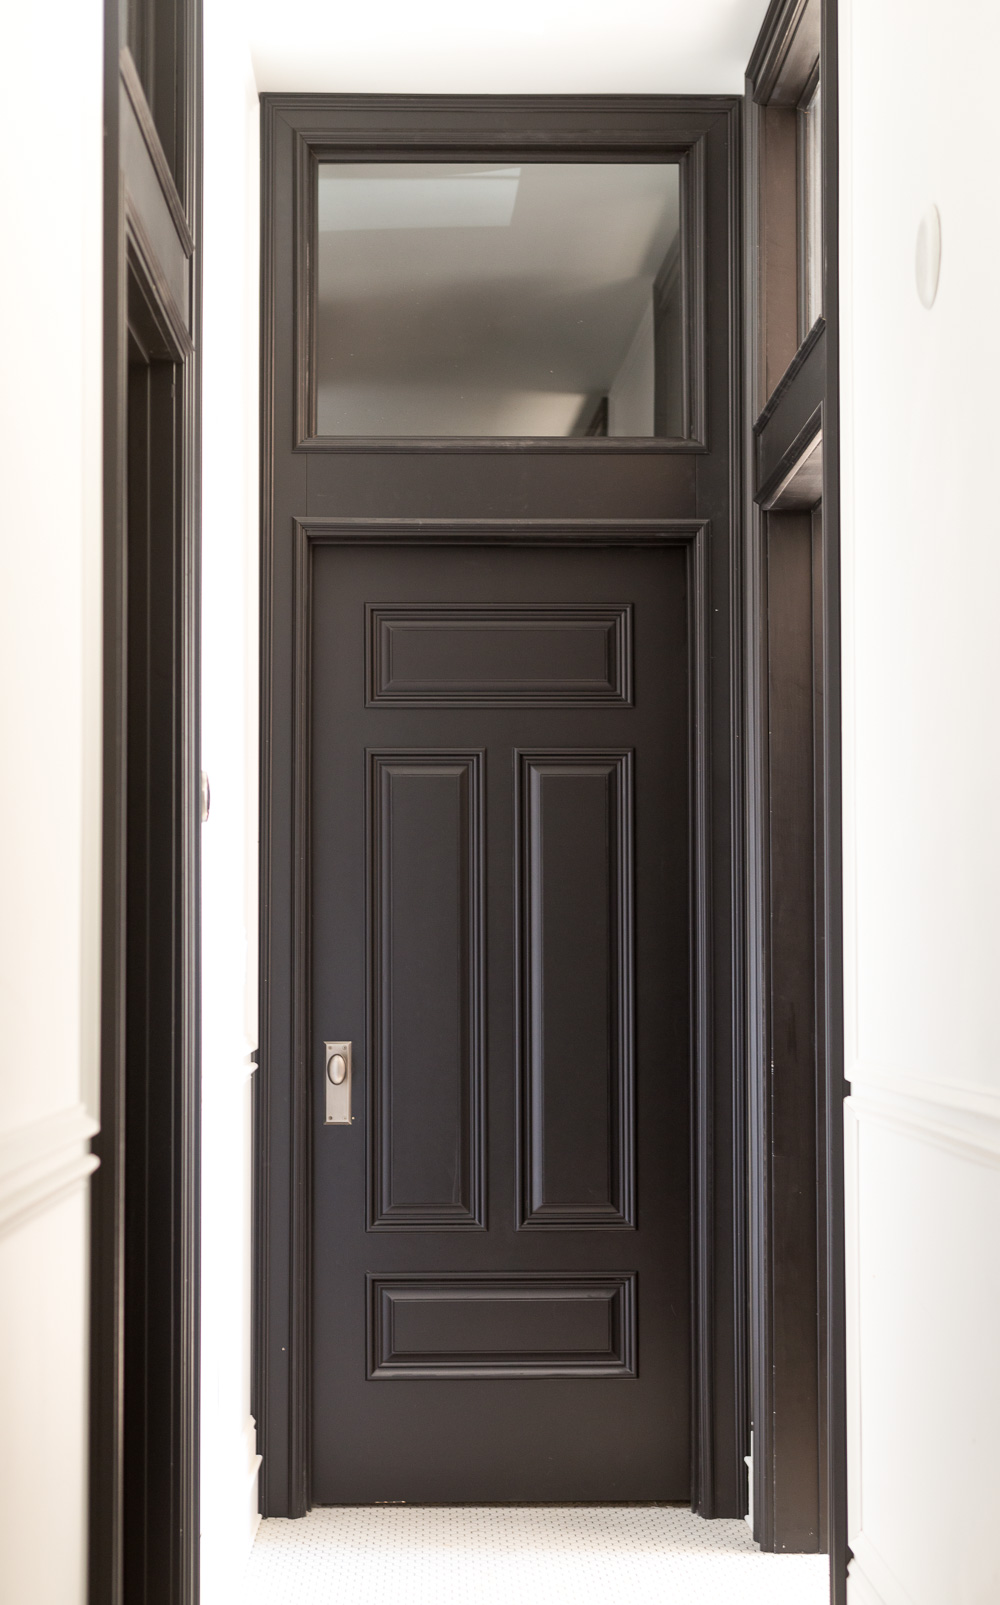 Black Interior Door with Transom and Heavy Moulding & The Perfectly Historic Interior Doors of My Dreams u2022 Vintage Revivals